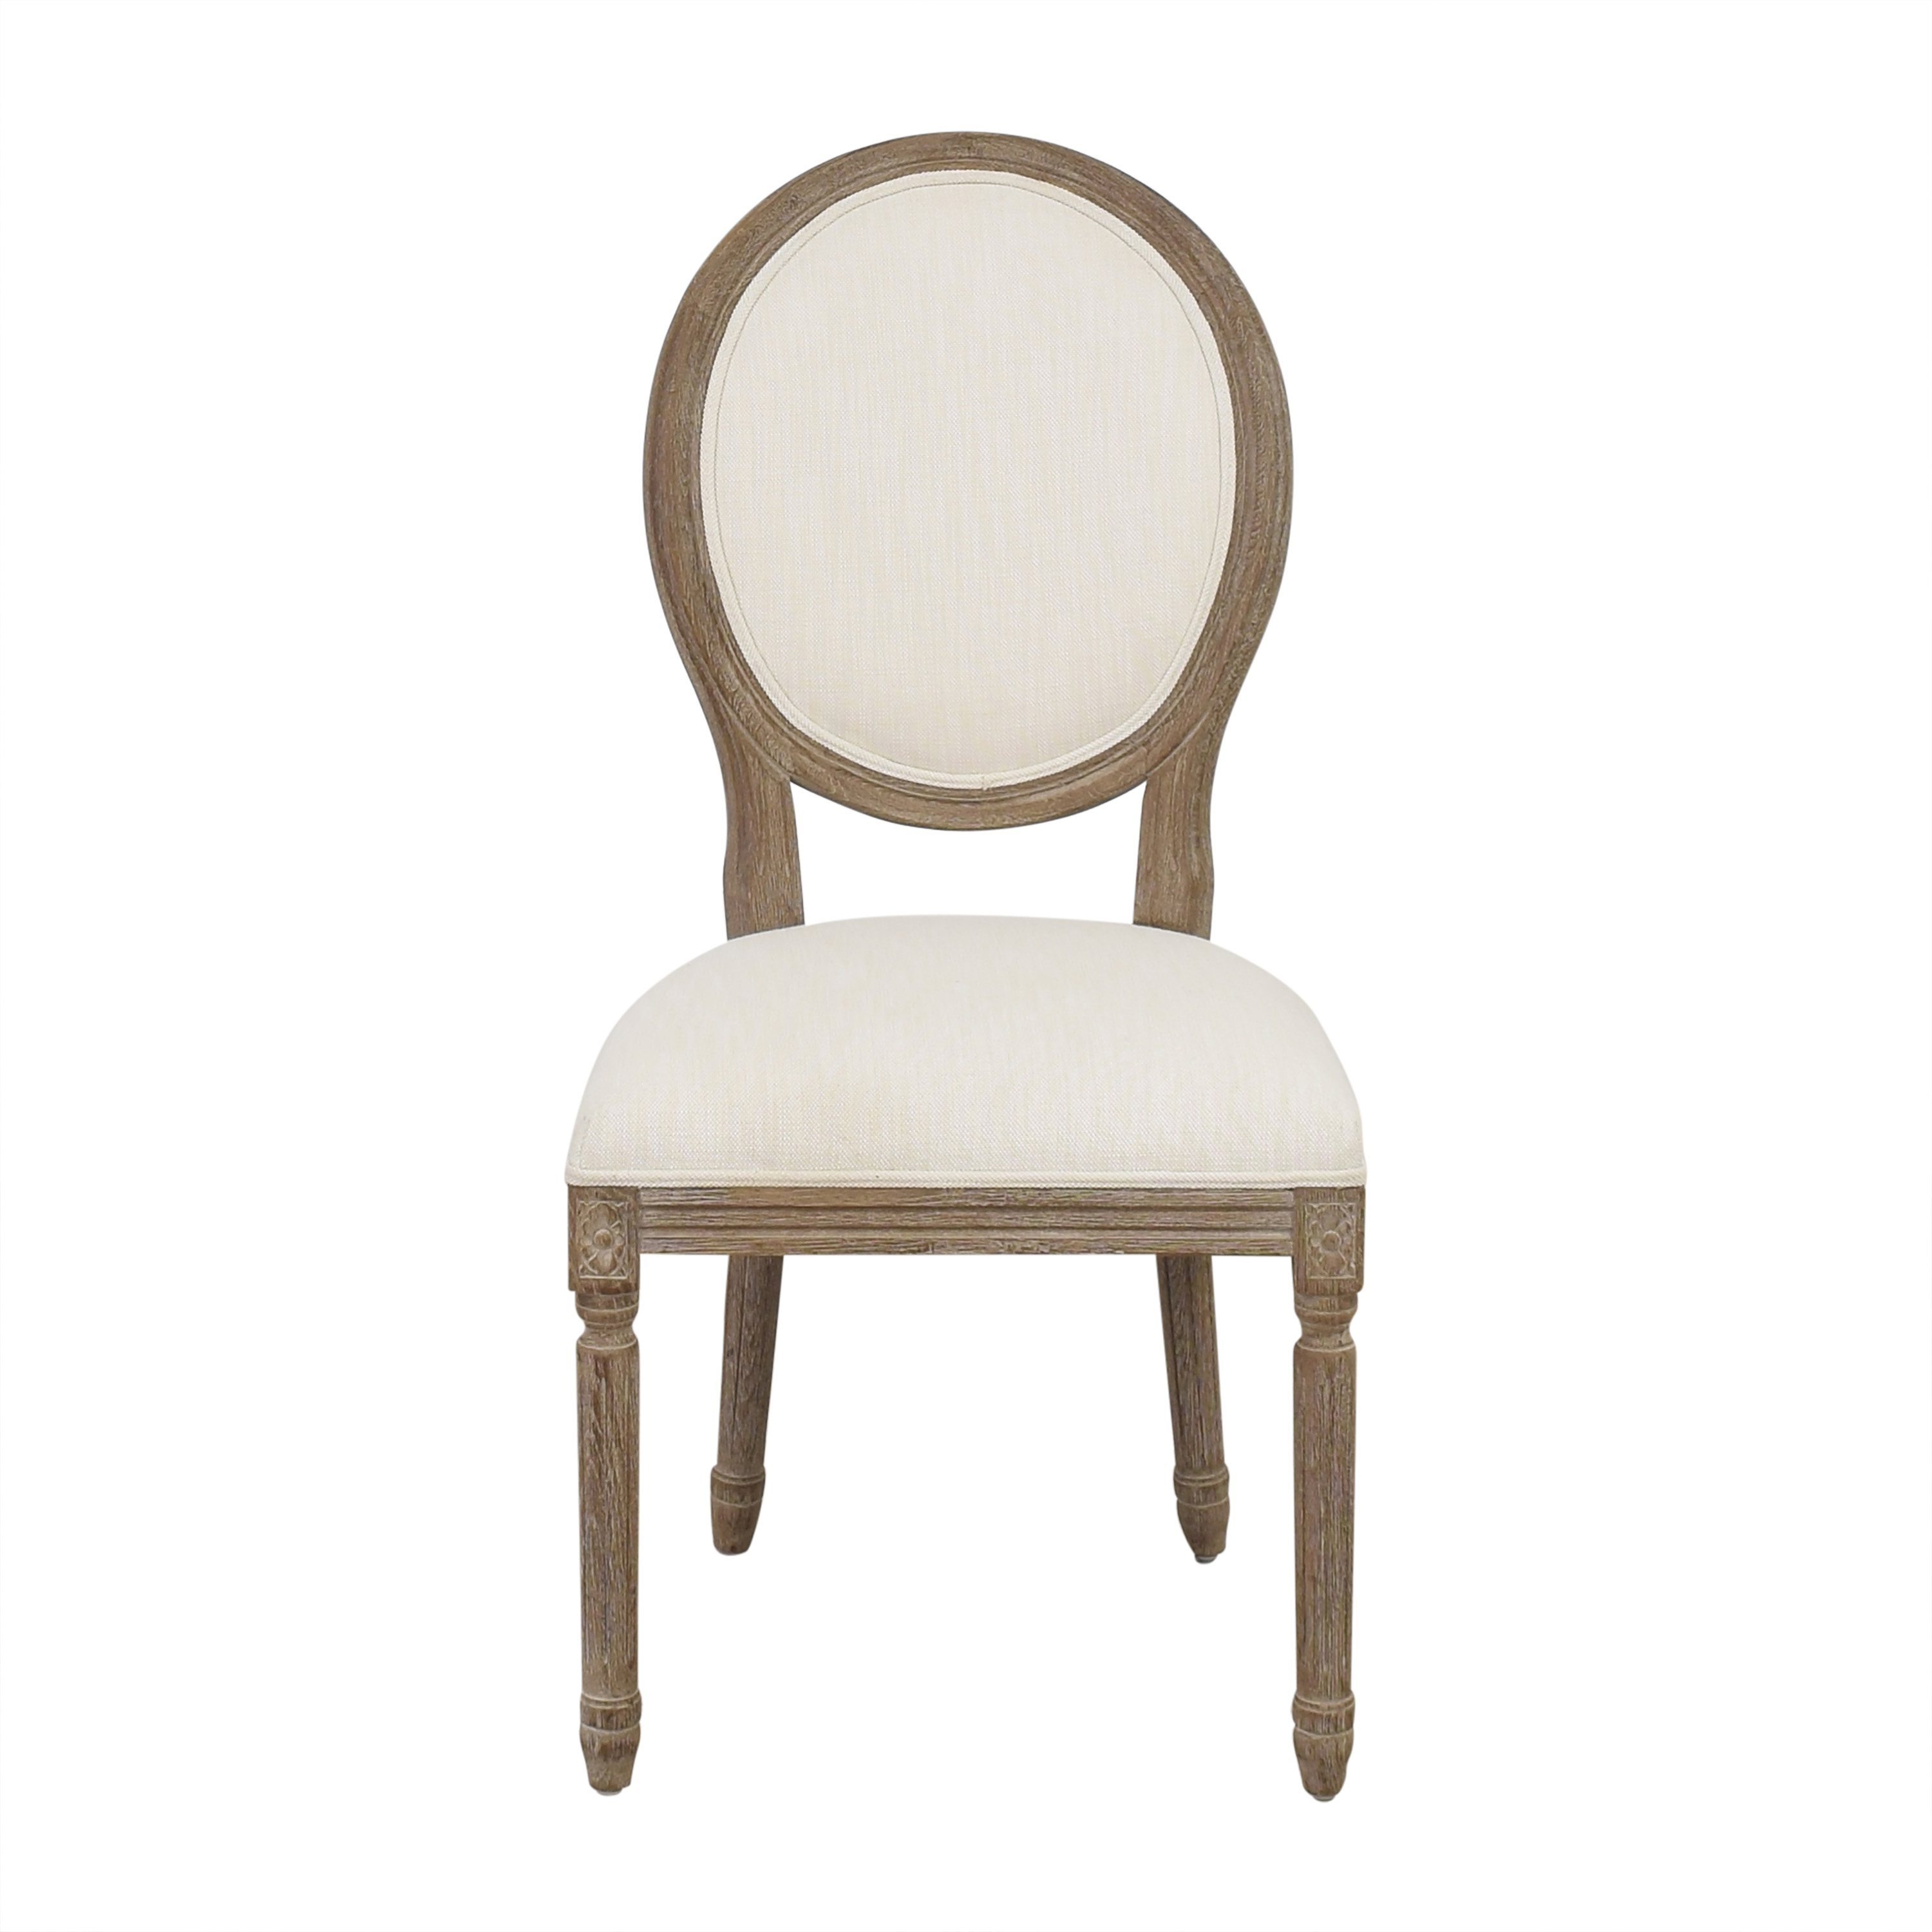 Restoration Hardware Restoration Hardware Vintage French Round Side Chair nj